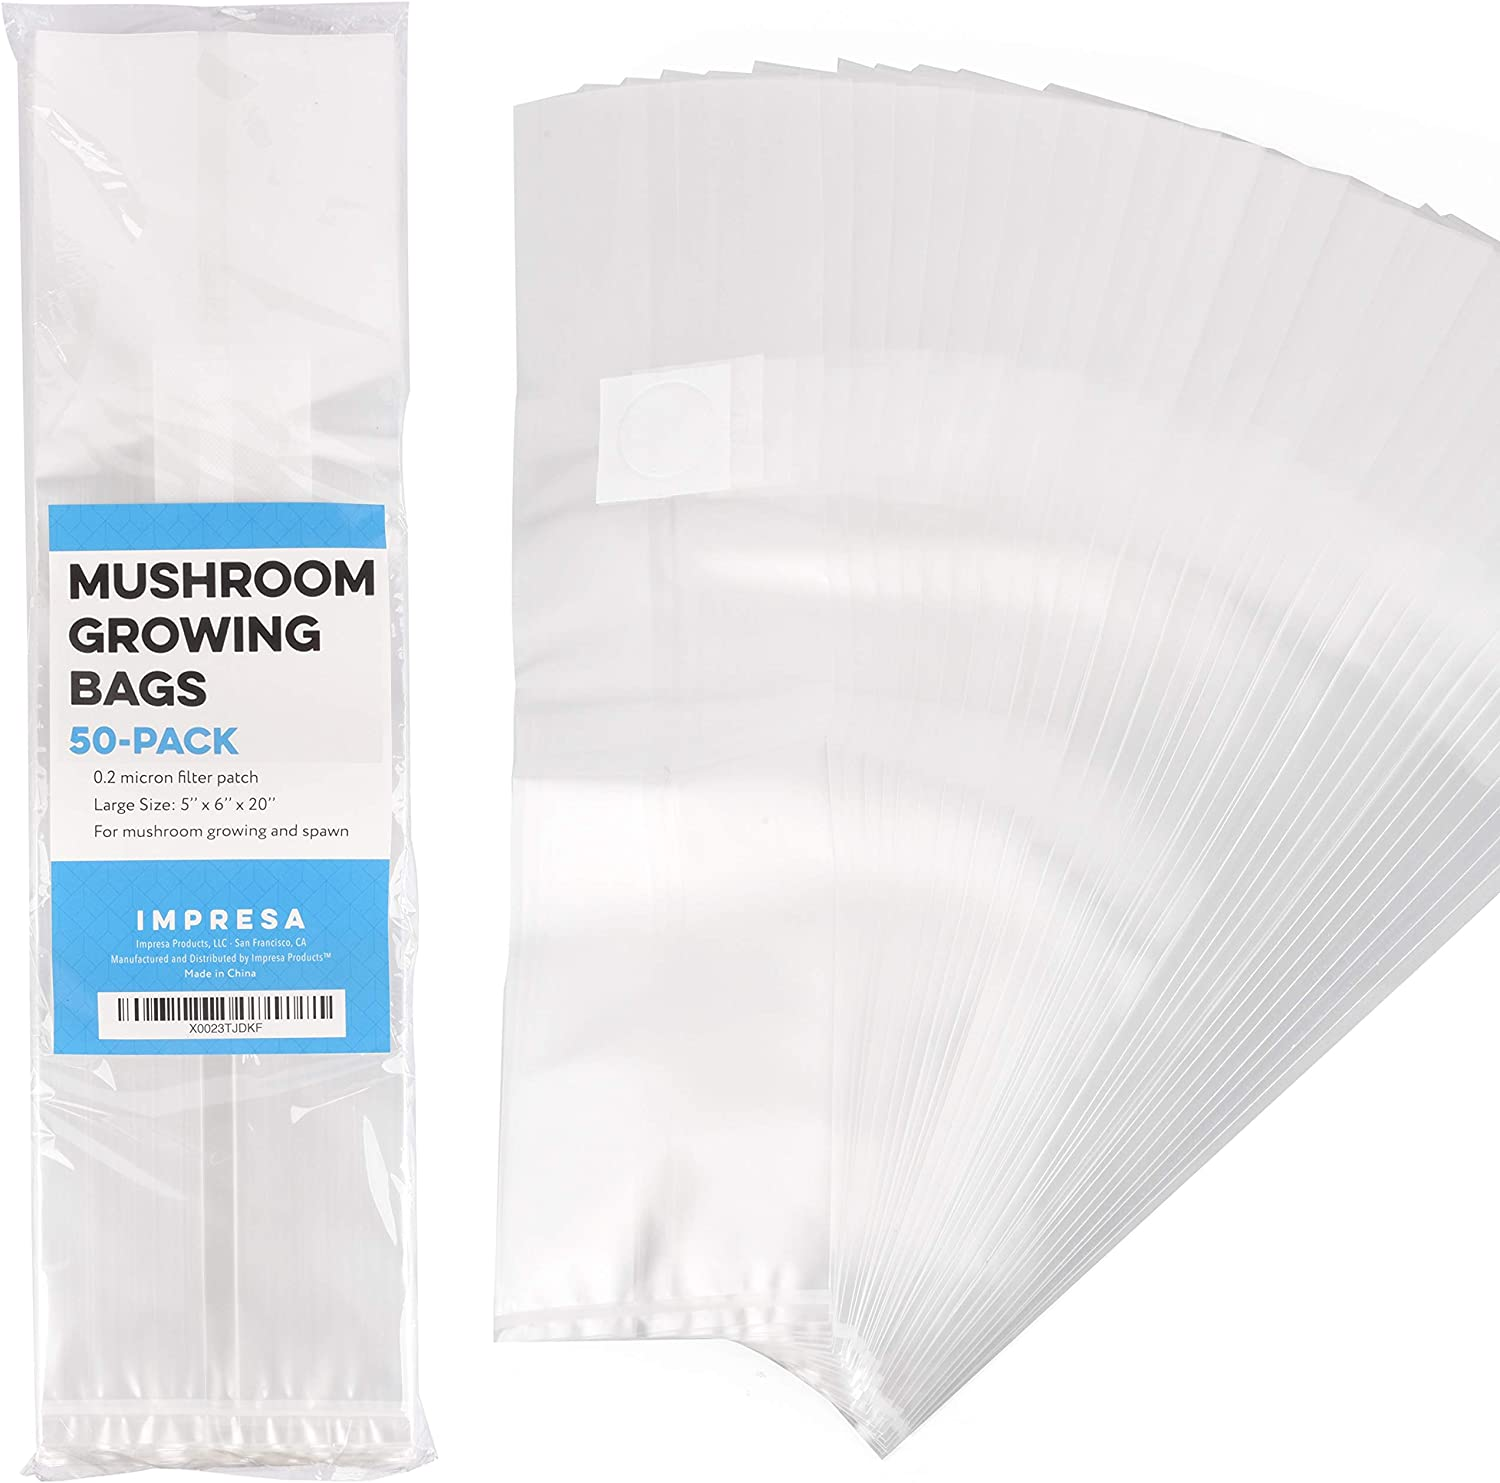 Impresa Products 50-Pack Mushroom Growing Bags Mushroom Spawn Bags, Extra Thick 6 Mil Bags, Large Size 6 X 5 X 20 0.2 Micron Filter Breathable, Autoclavable Bags That Stand Up